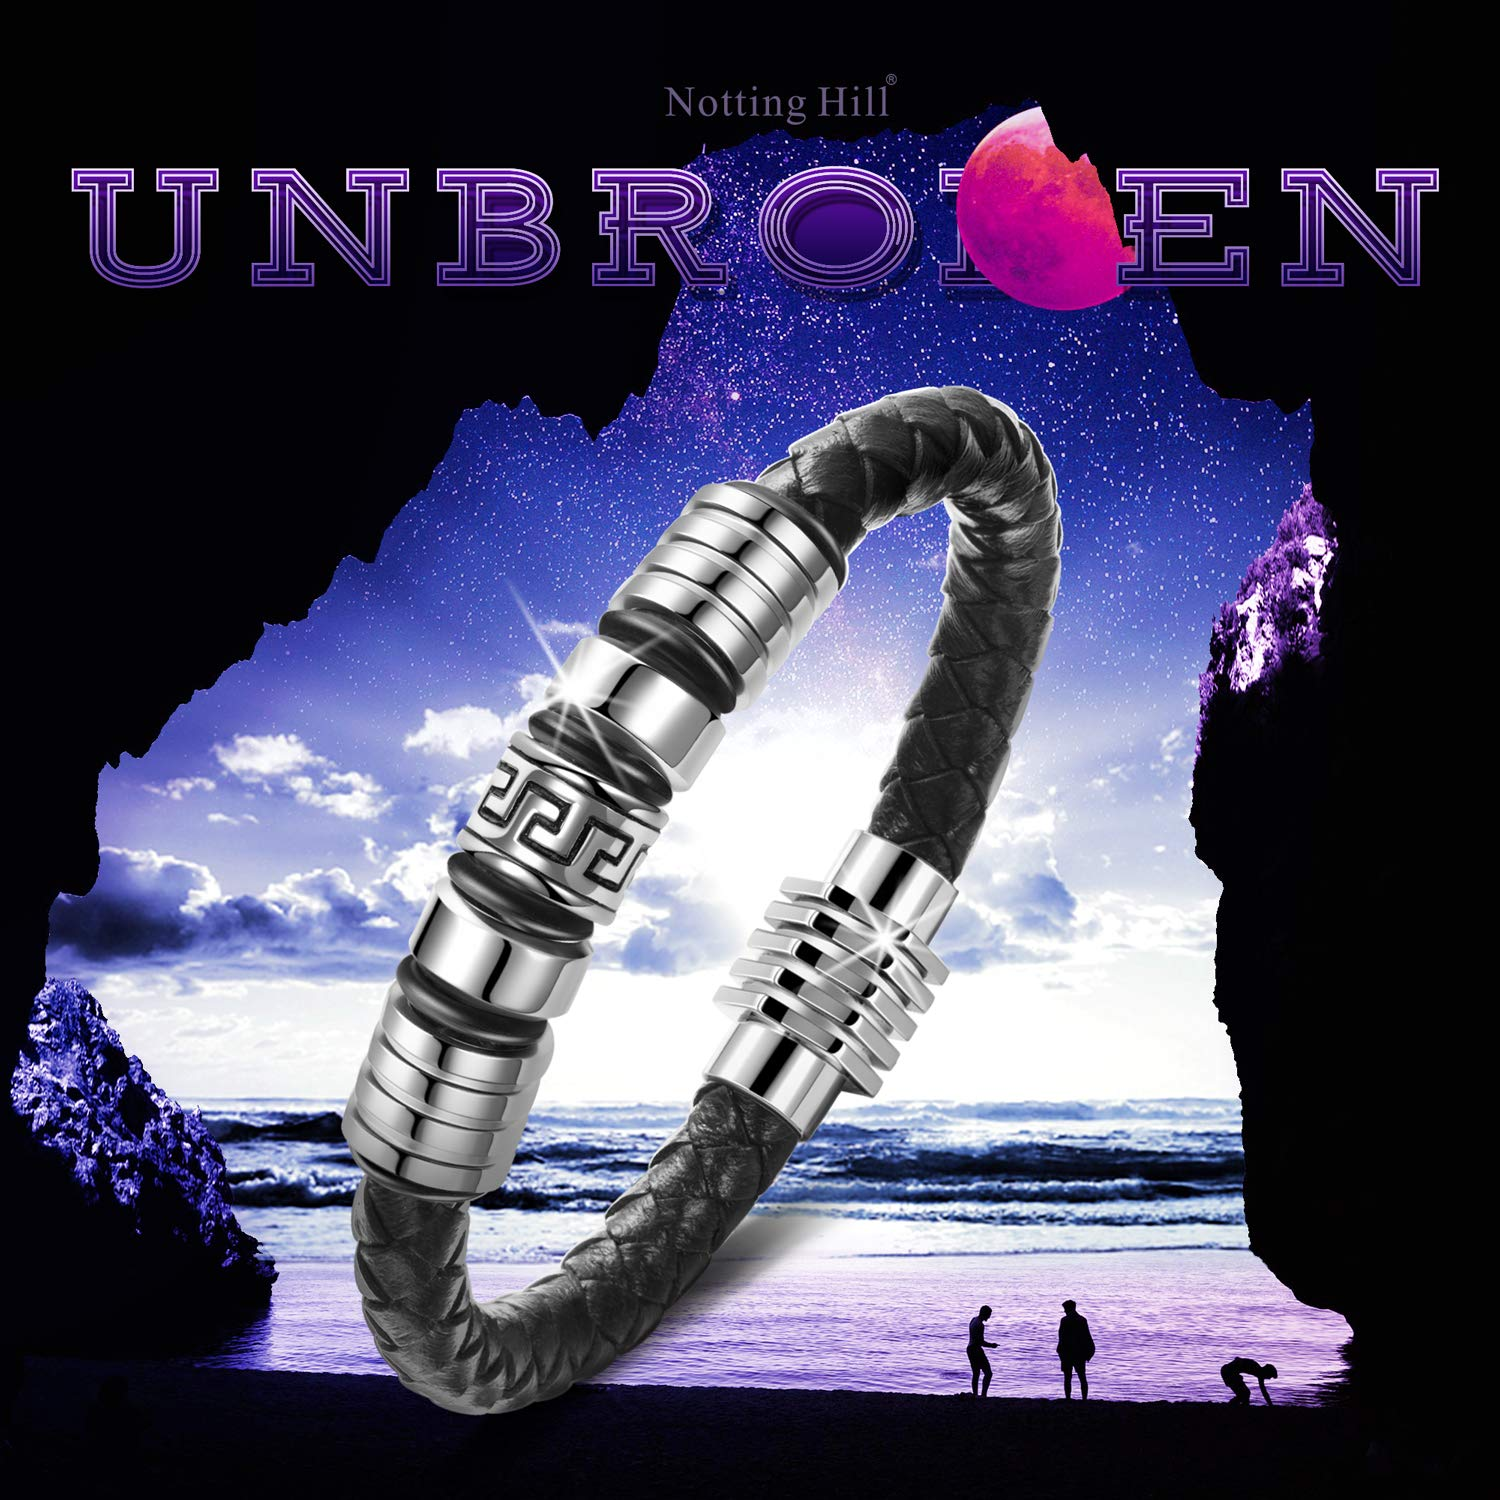 Black and Silver Unbroken Notting Hill Christm/äs Gifts Metal Titanium Steel Mens Bracelet